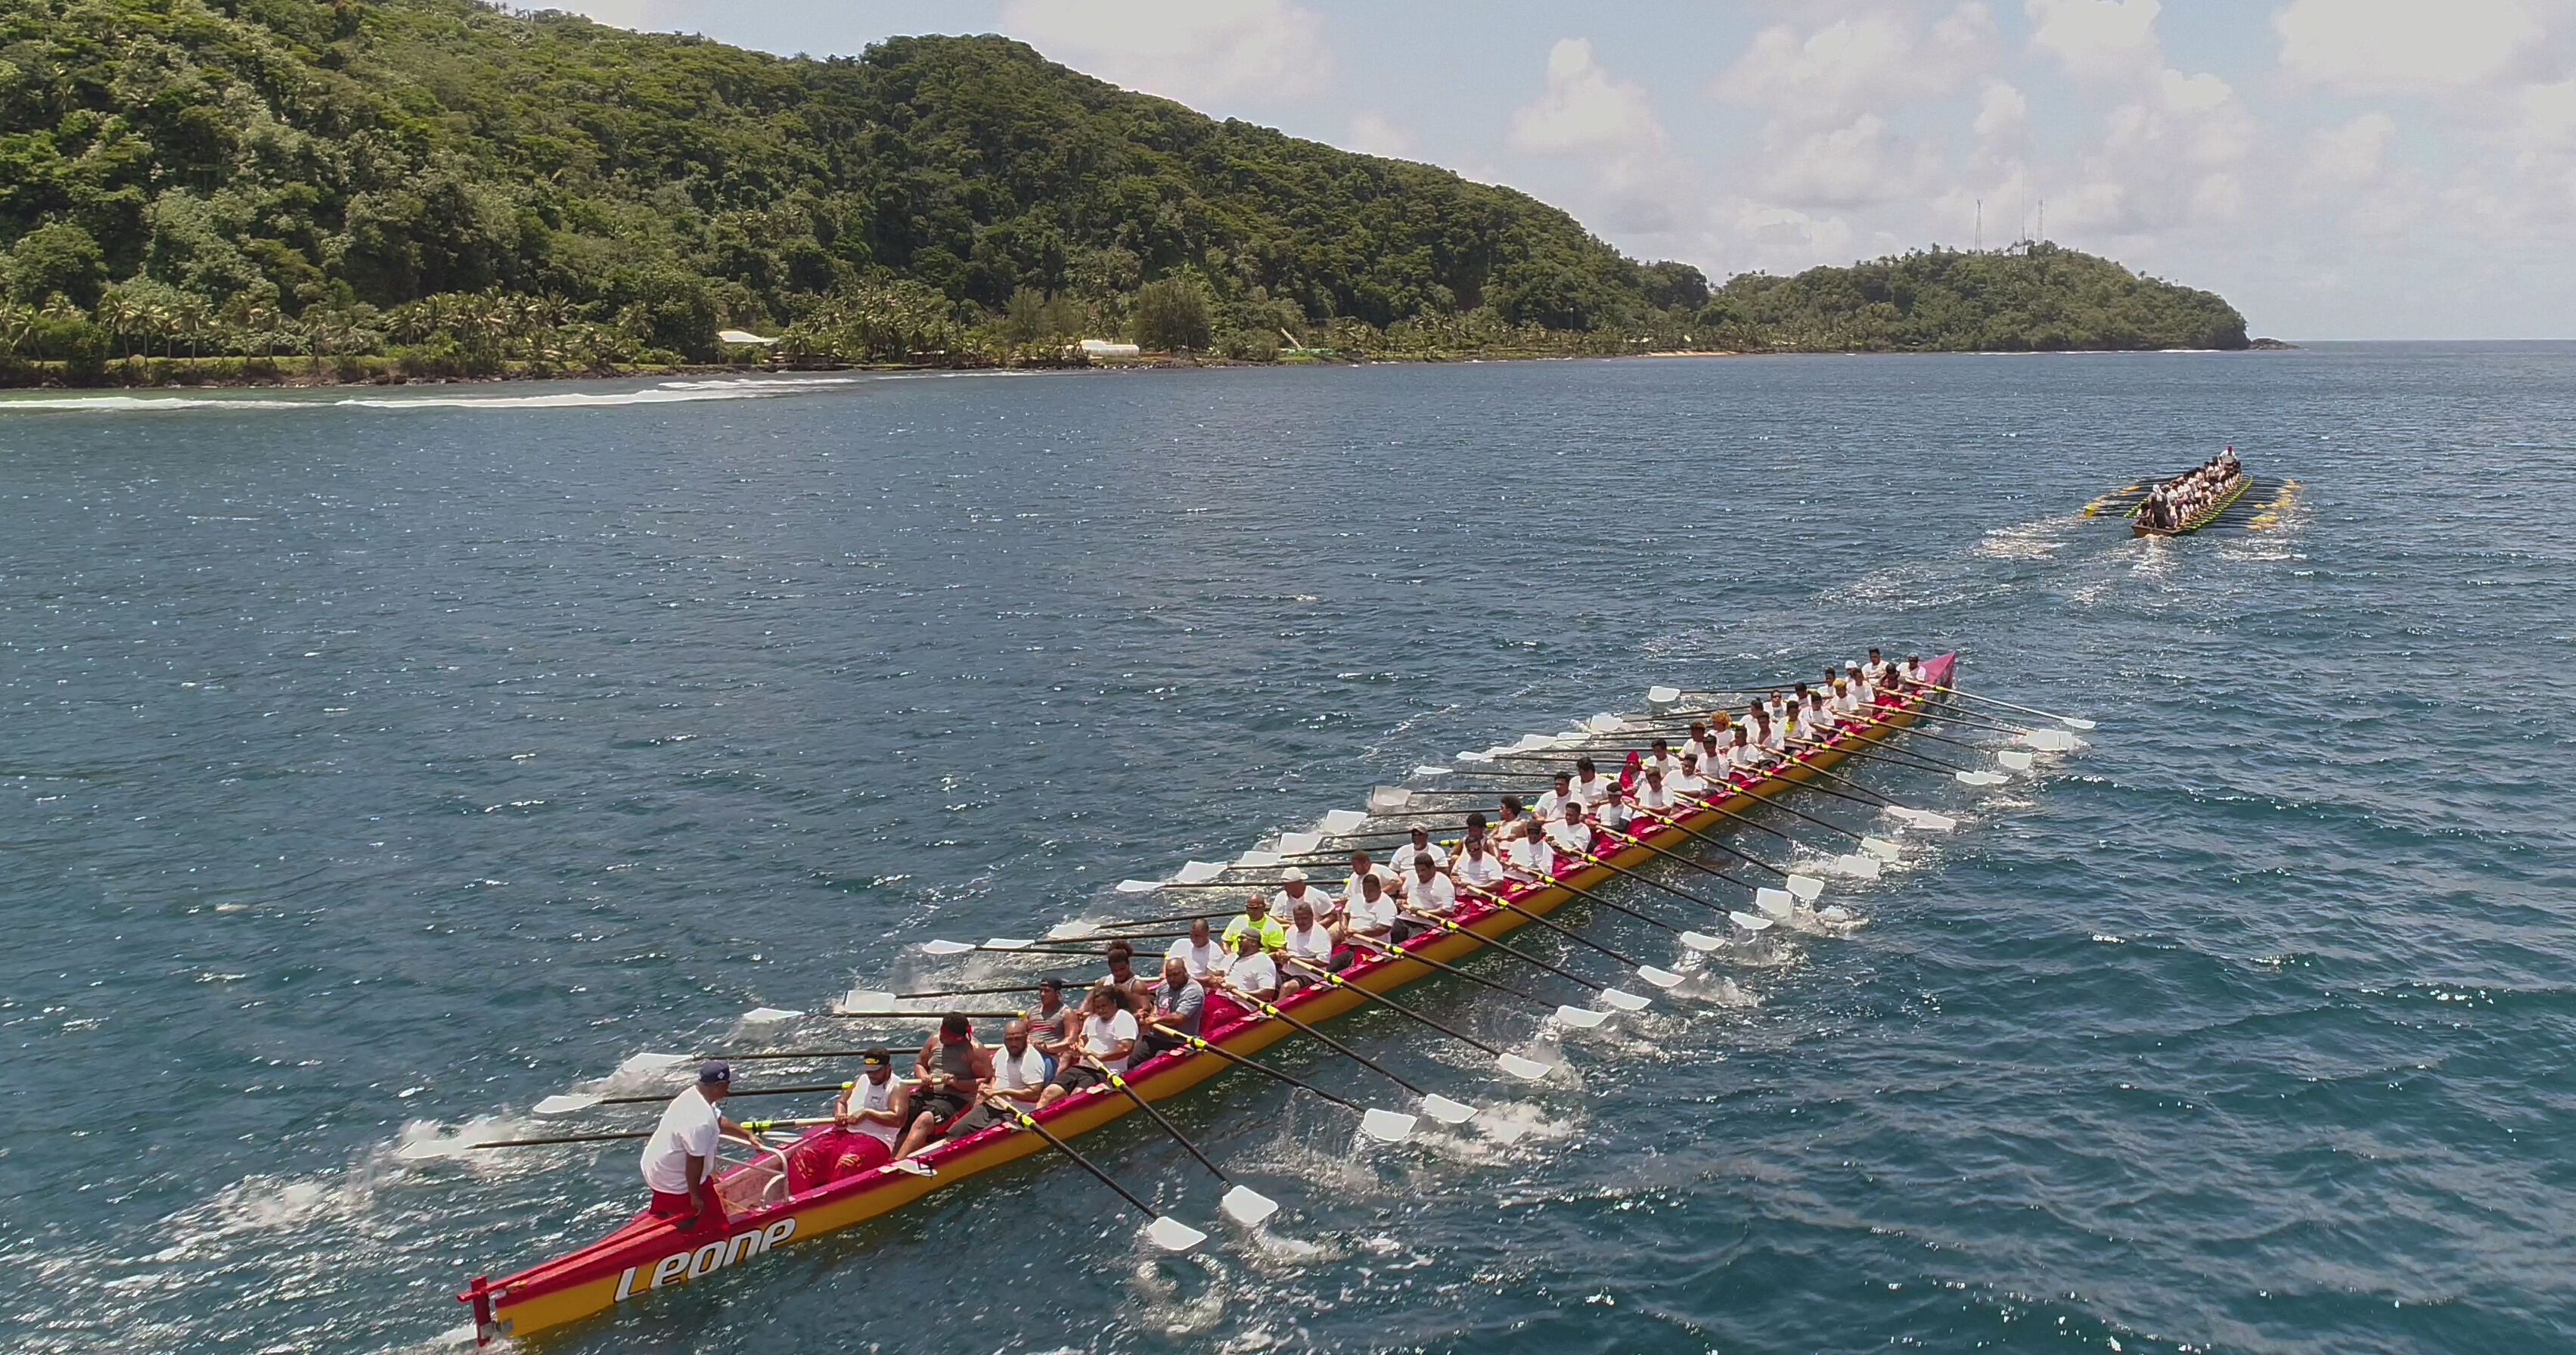 Traditional canoes race on the ocean near land in American Samoa. Each boat has about 40 paddlers.